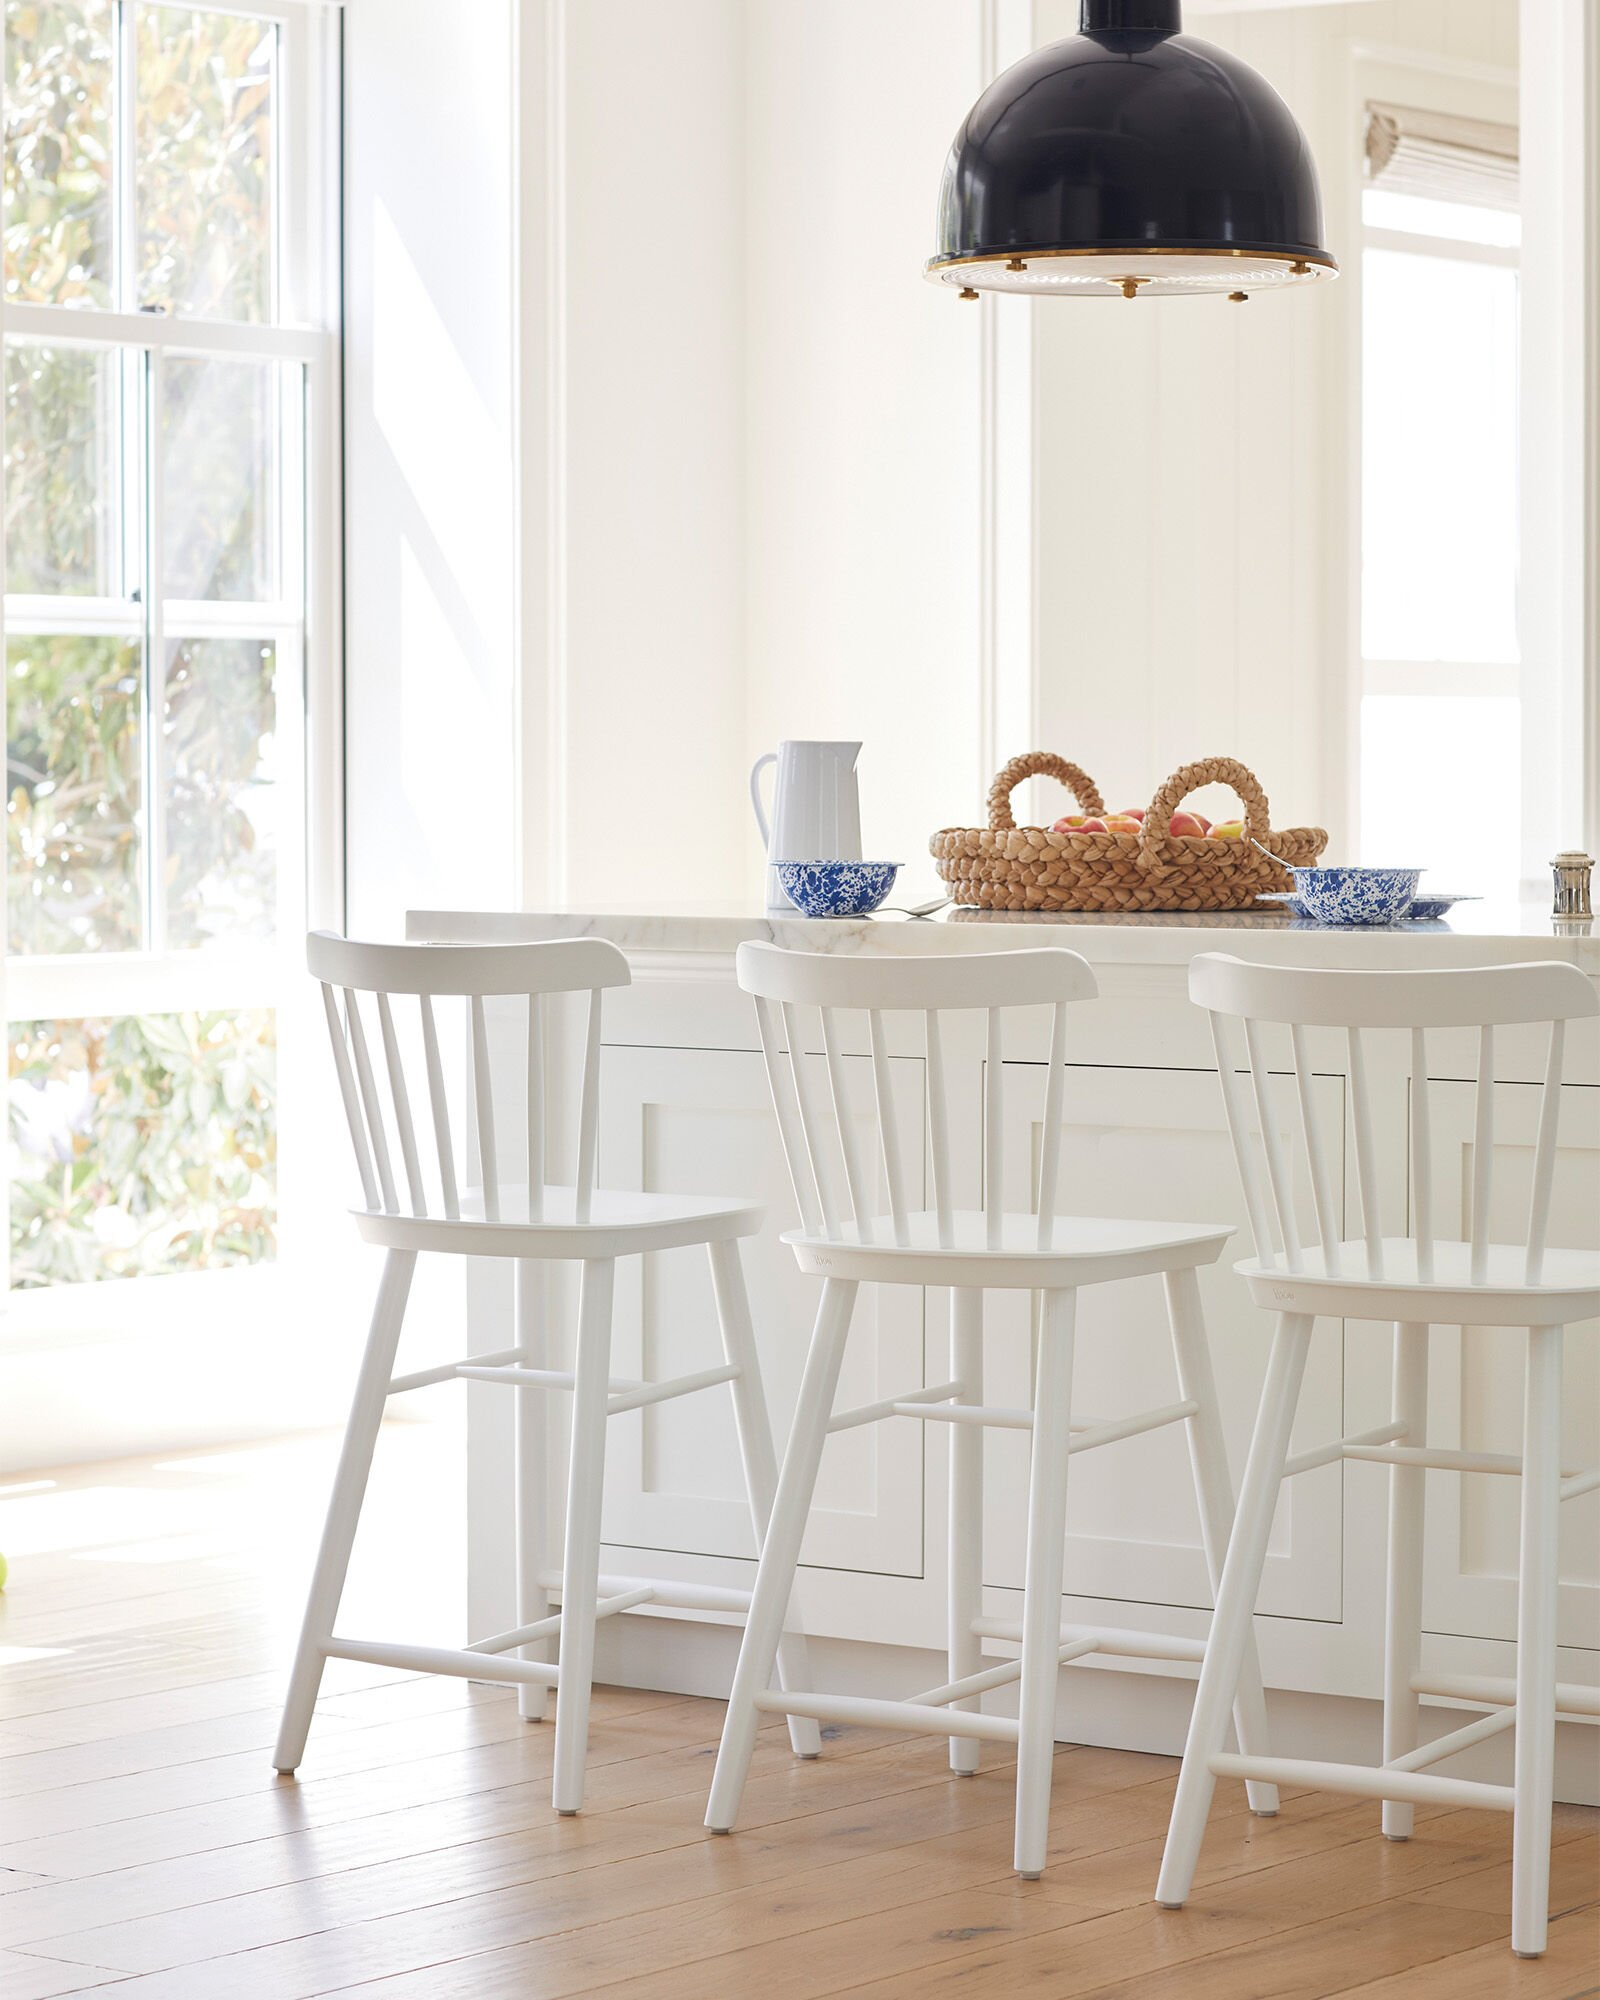 white wood counter stools in pure white kitchen with blue cereal bowls on counter and woven rattan tray full of apples